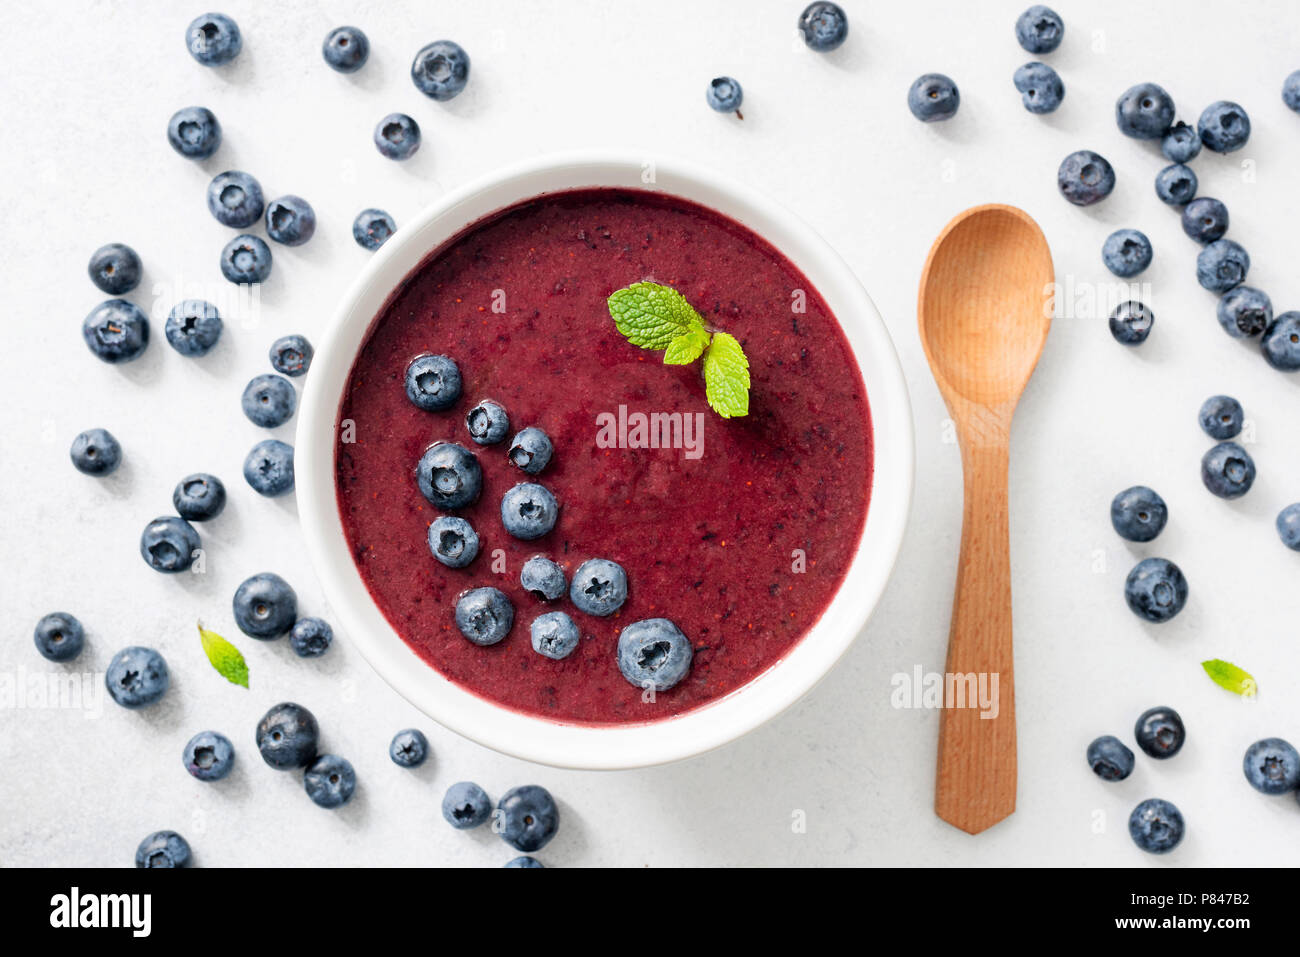 Acai blueberry smoothie bowl on white background top view. Trendy superfood, cleansing, detox and nutrition meal - Stock Image